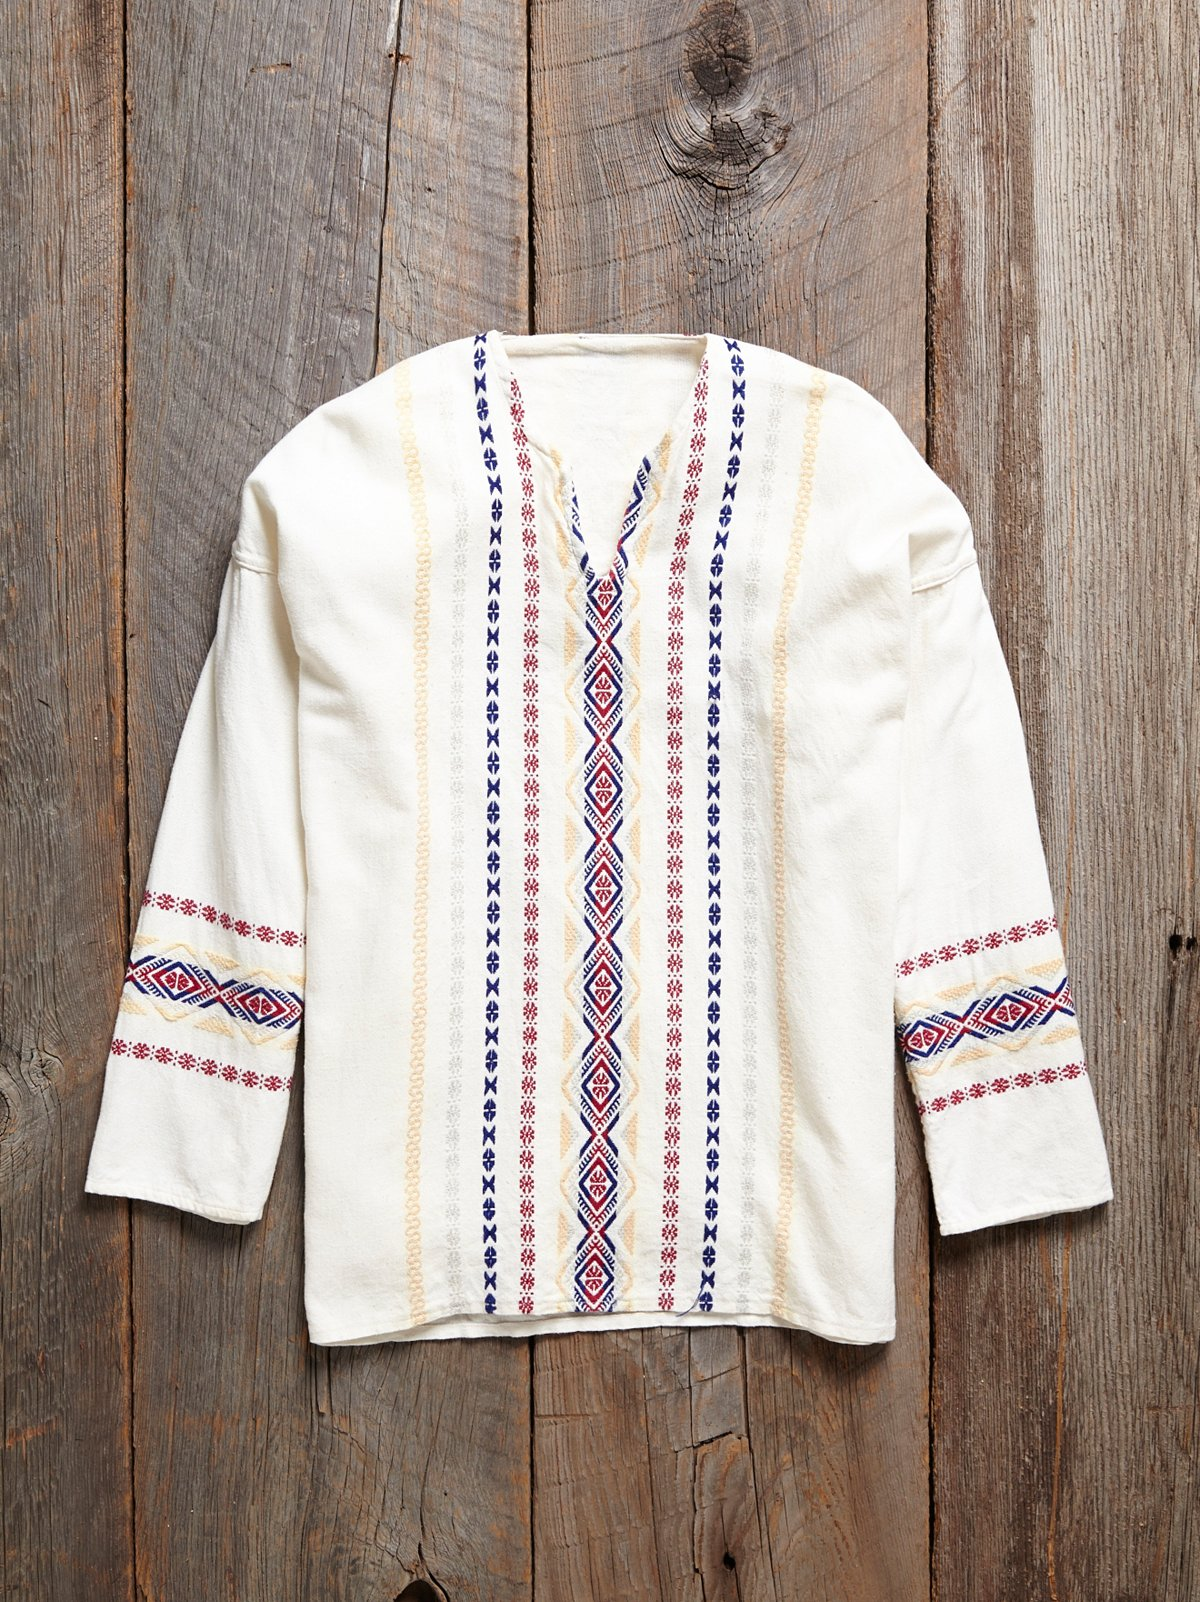 Vintage 1970s Embroidered Tunic Shirt